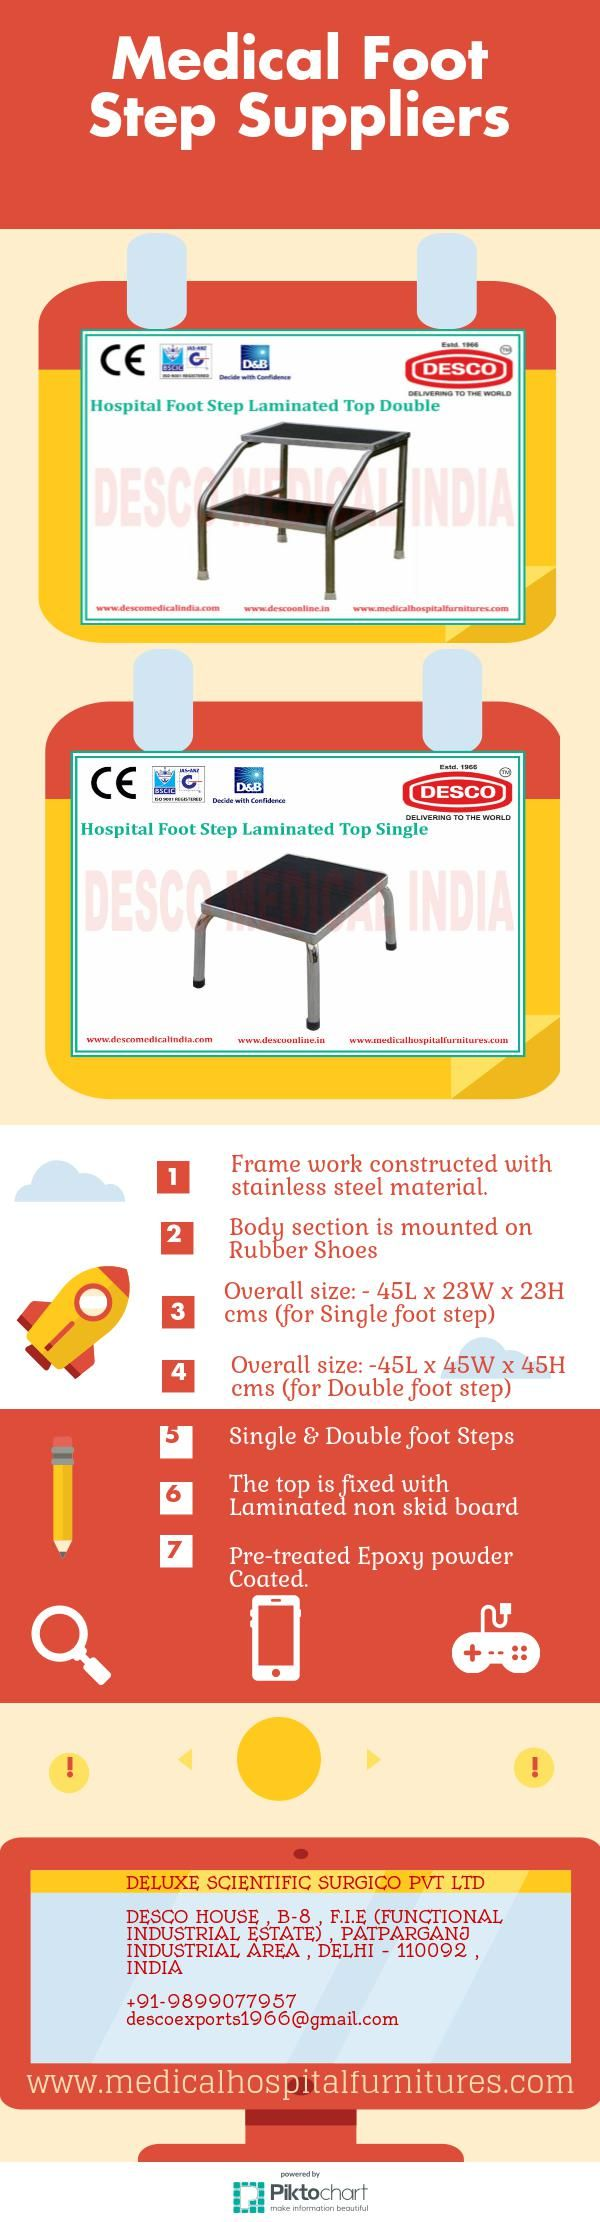 We are the reknowned manufacturer &  supplier  of Reliable Hospital Foot Step. The offered item is generated making use of the finest Stainless steel frame work mounted on rubber shoes and operated innovation. To meet up with up with distinctive requirements of customers.http://goo.gl/mvuOLk